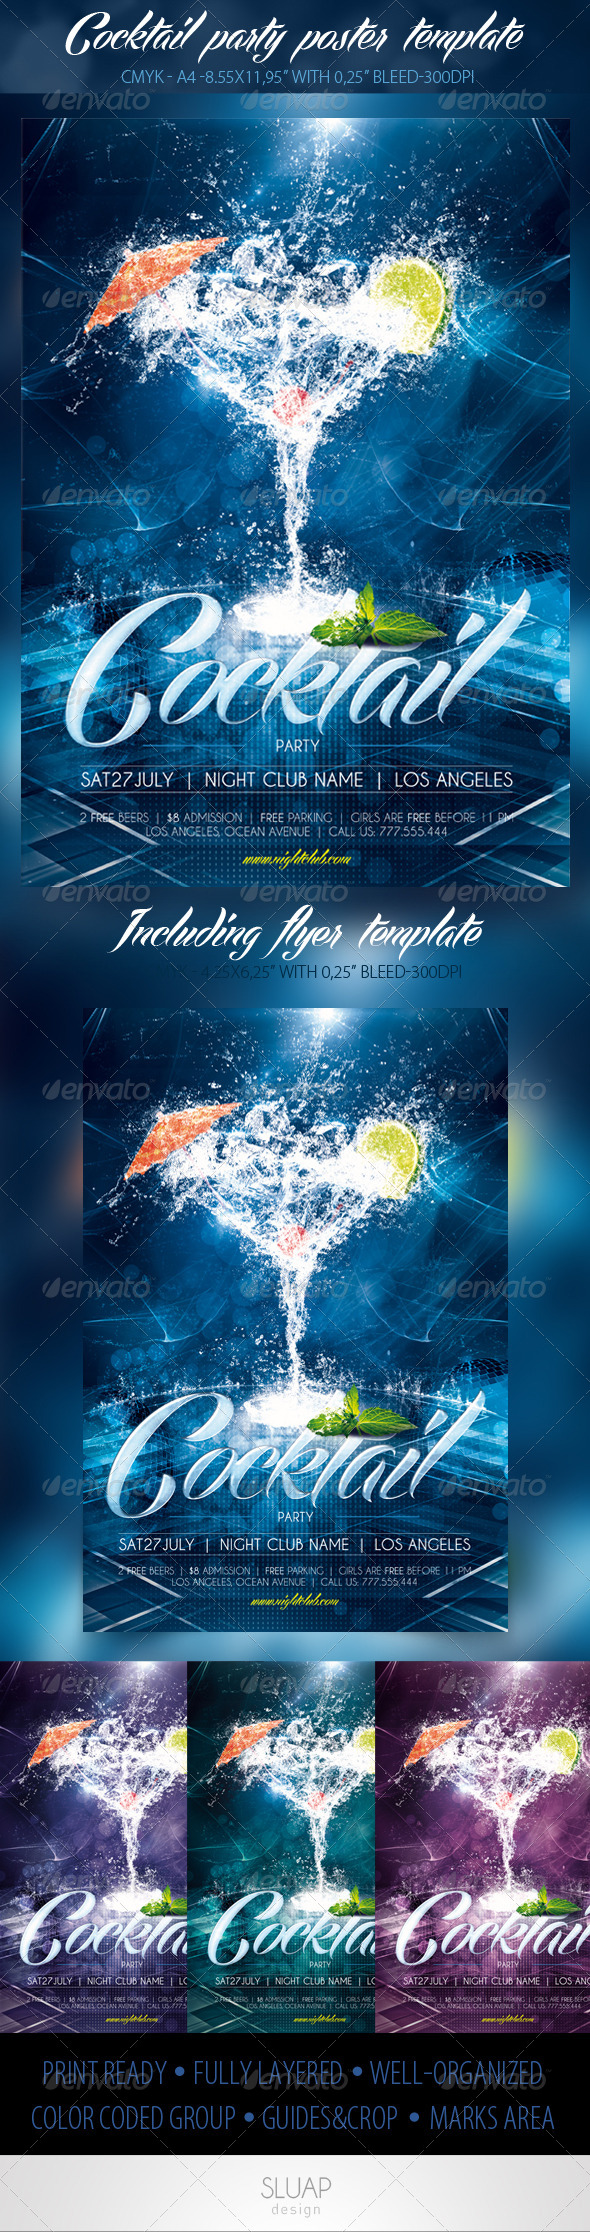 Cocktail Party Poster & Flyer Template - Events Flyers